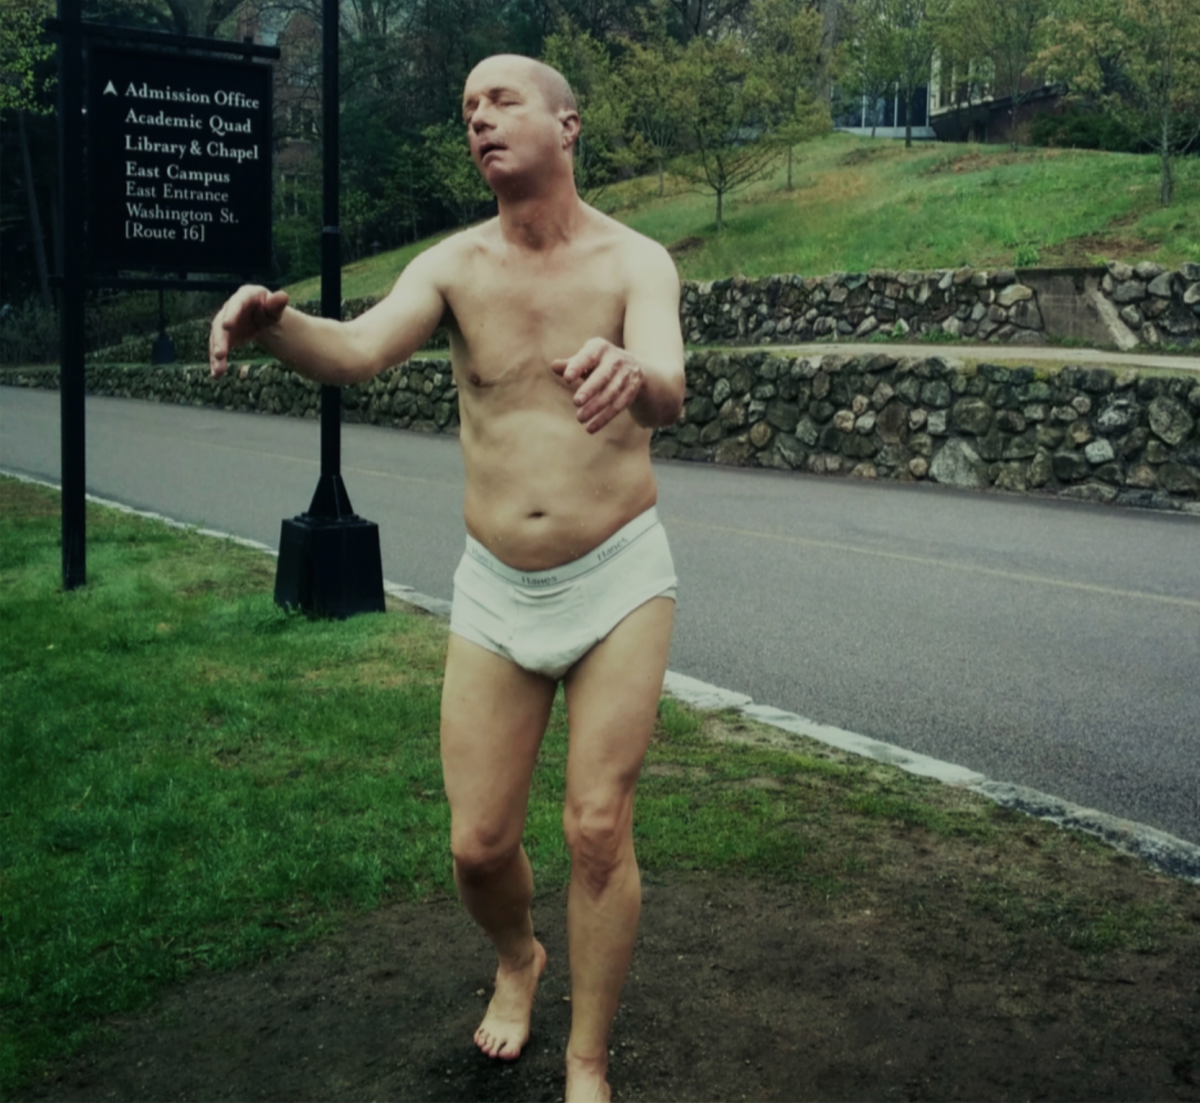 Artist Tony Matelli's Sleepwalker installation on the Wellesley College campus in Wellesley, MA. Photo credit: Megan Strait